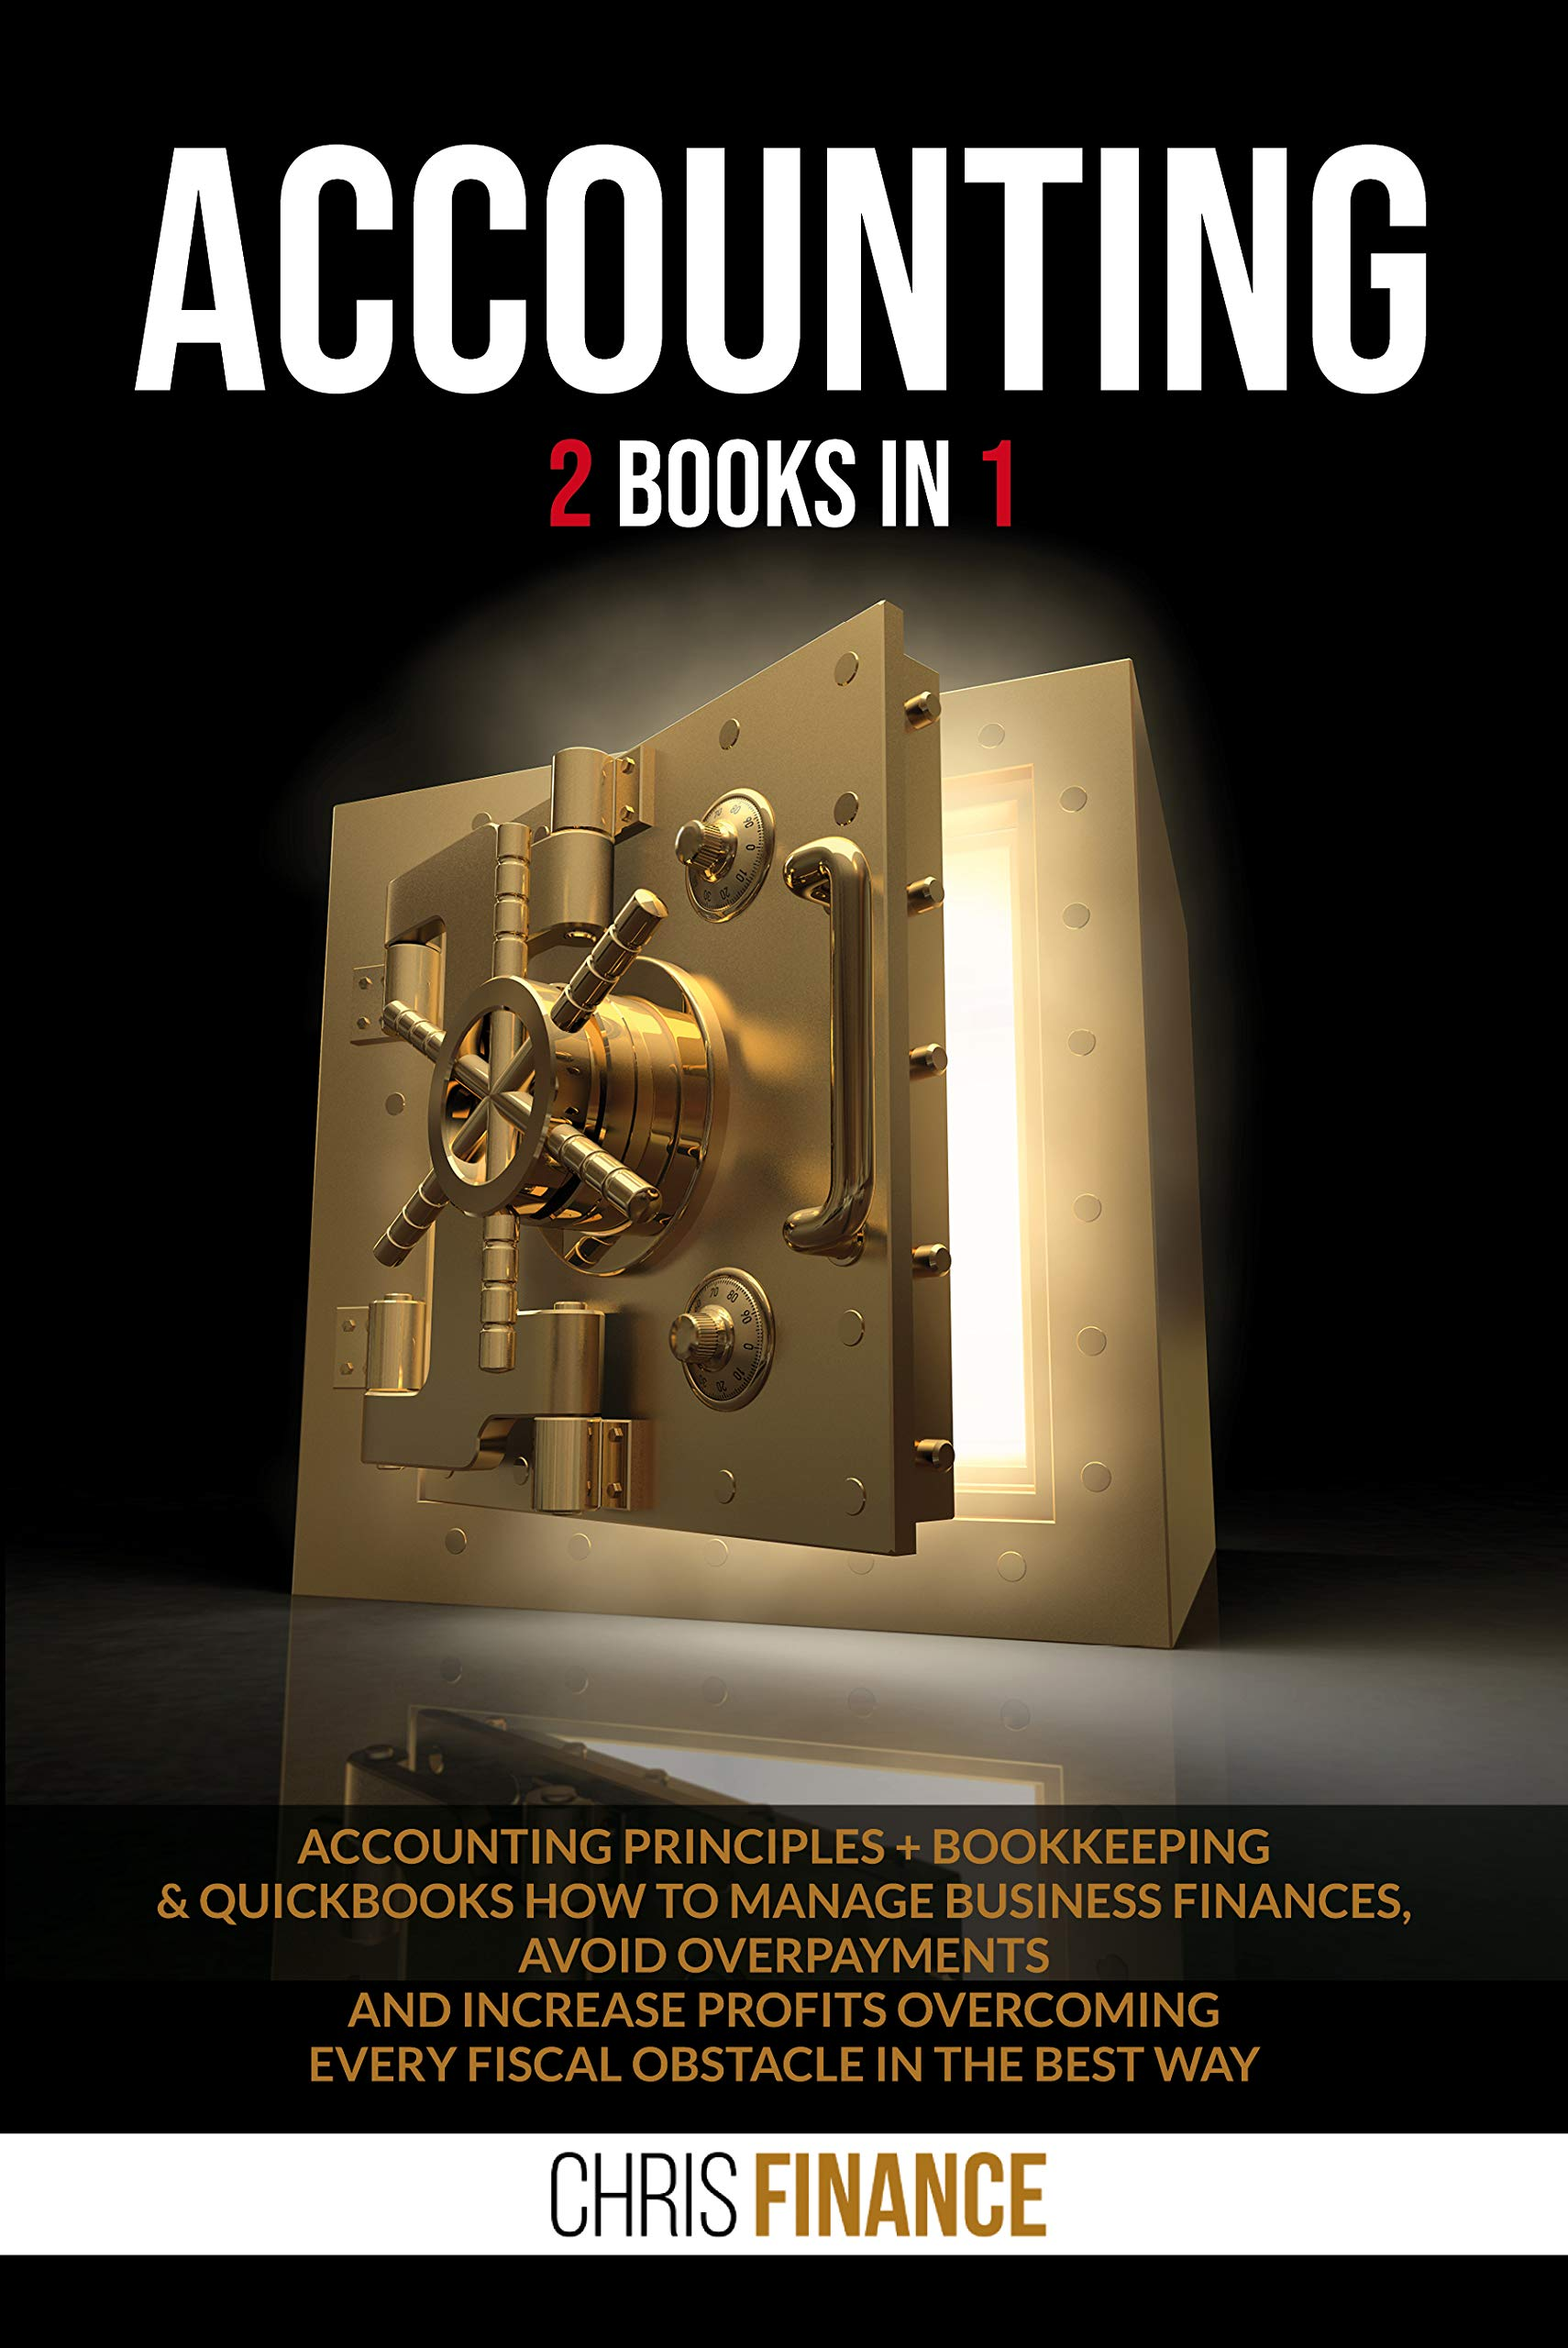 Accounting : 2 books in 1: Accounting Principles + Bookkeeping & Quickbooks how to manage finances, avoid overpayments and increase profits overcoming every fiscal obstacle in the best way